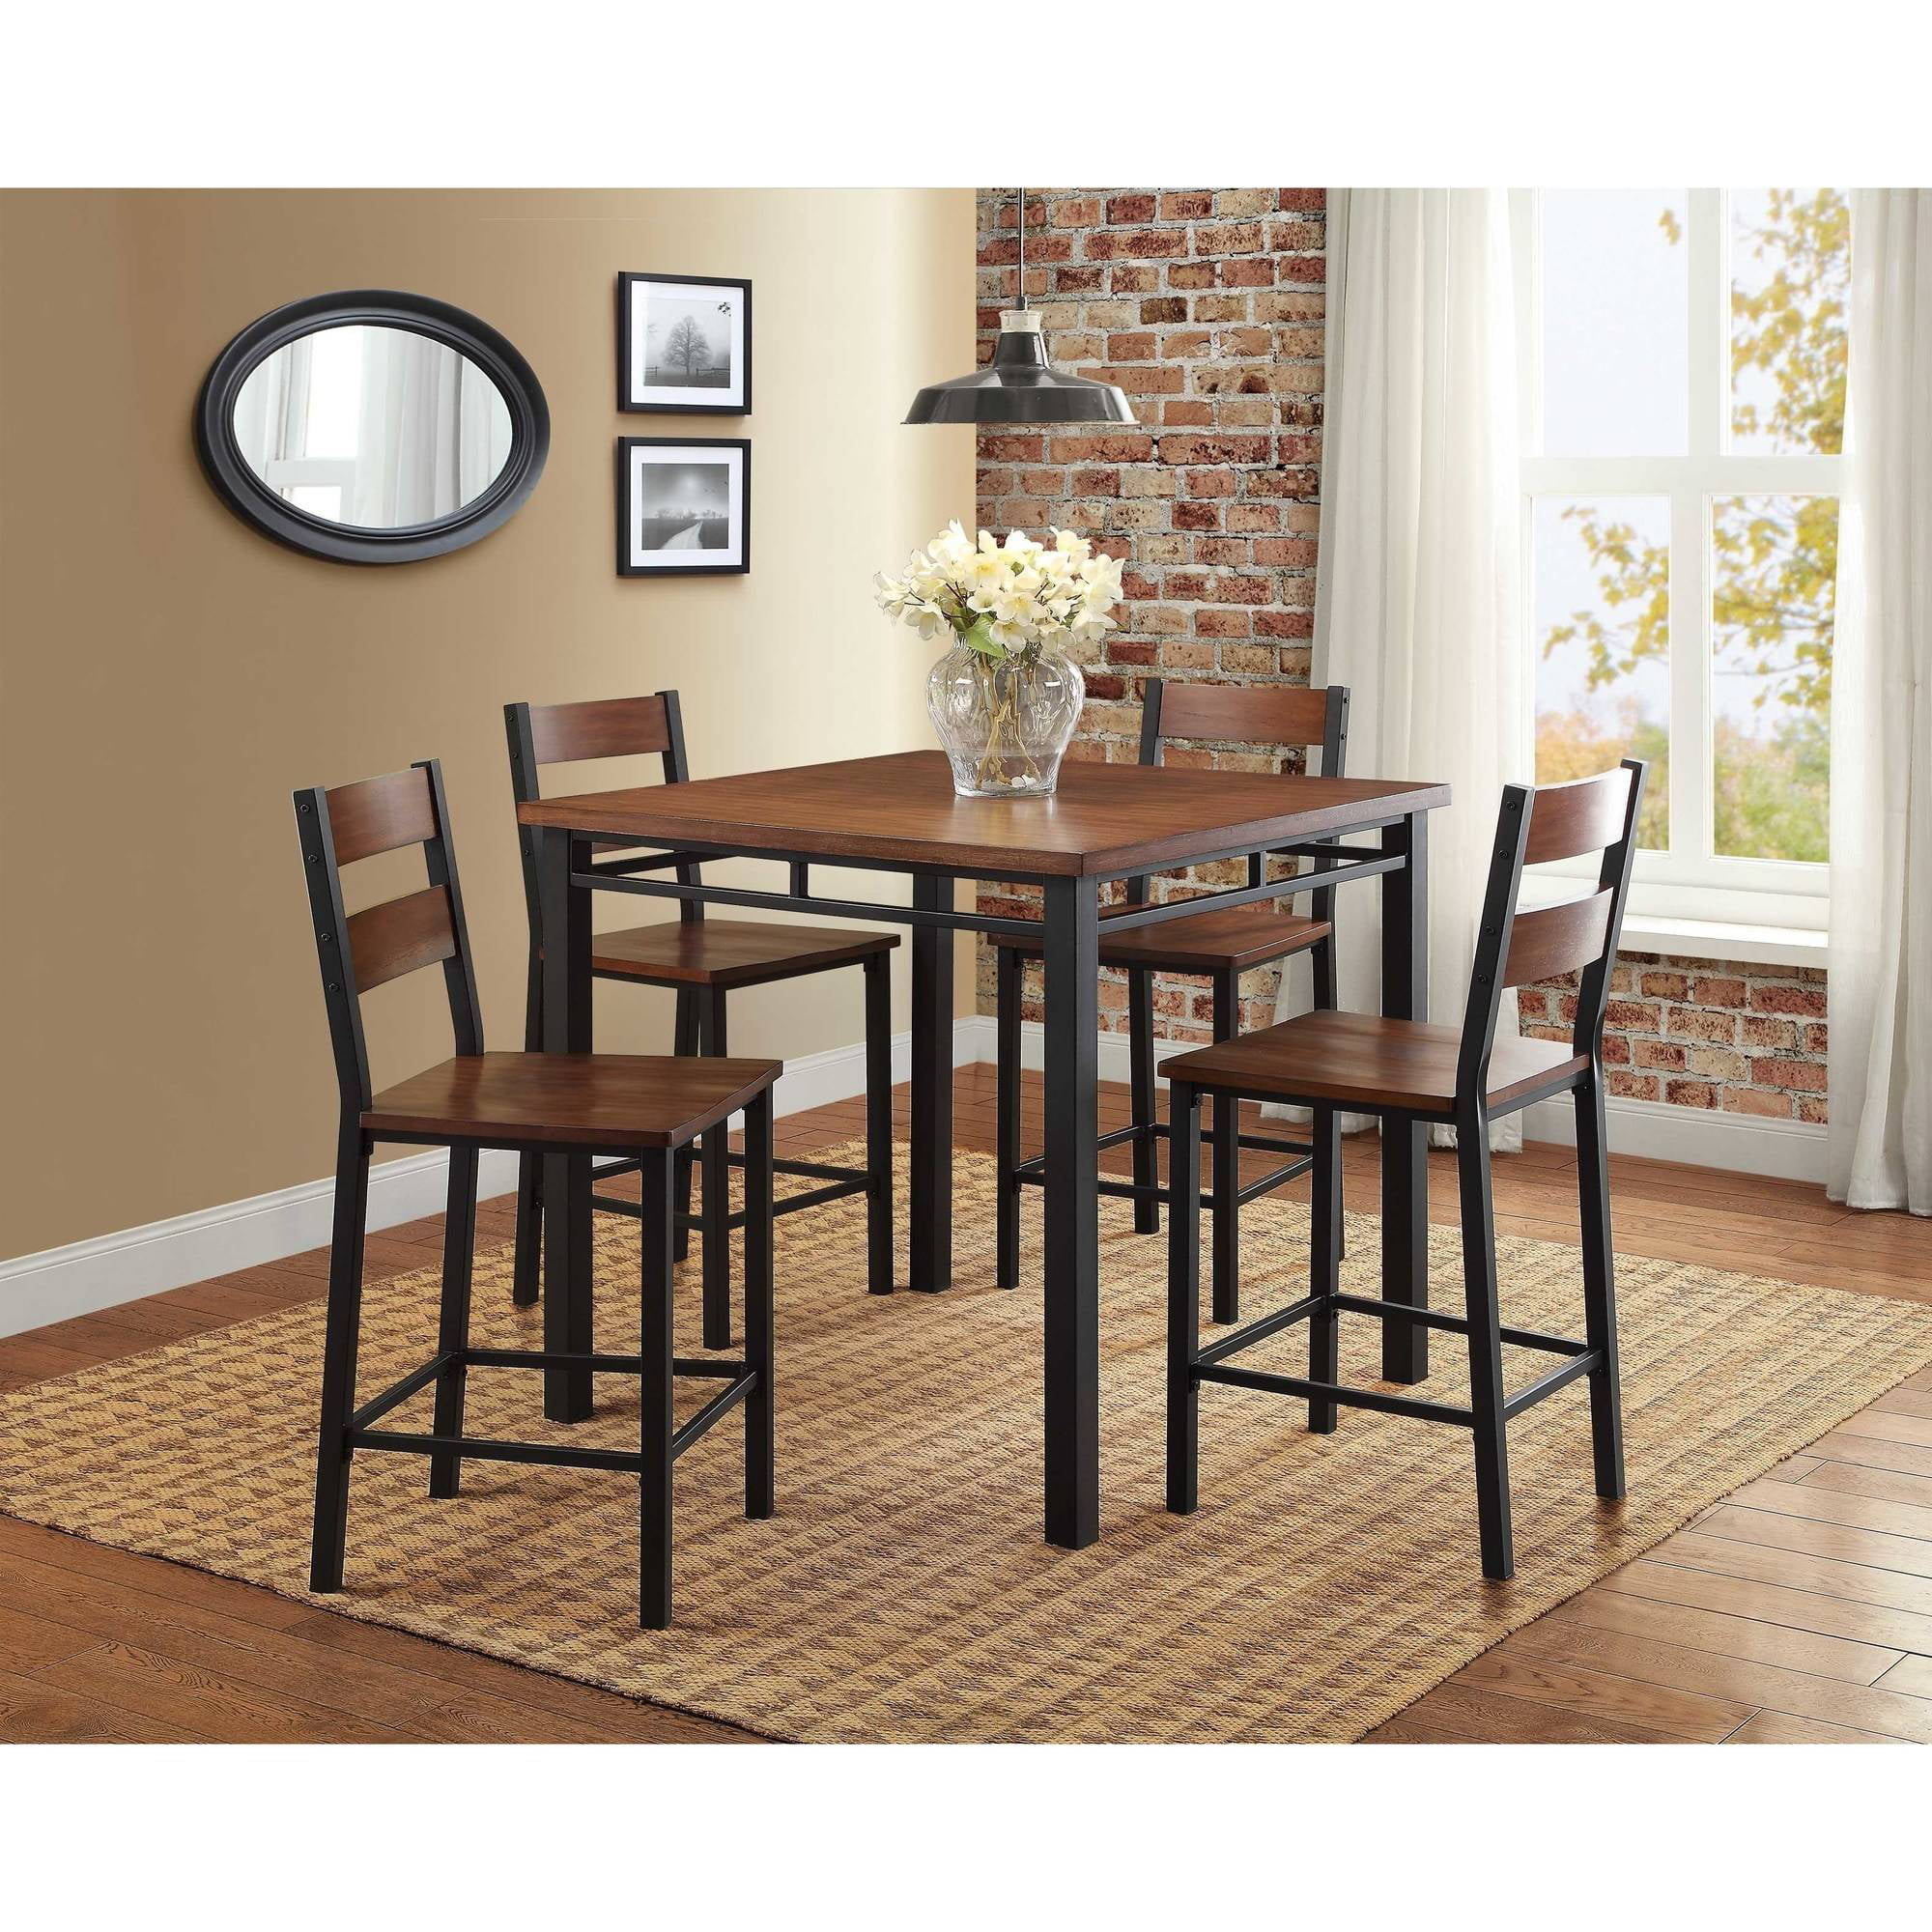 better homes and gardens mercer 5piece counter height dining set vintage oak walmartcom